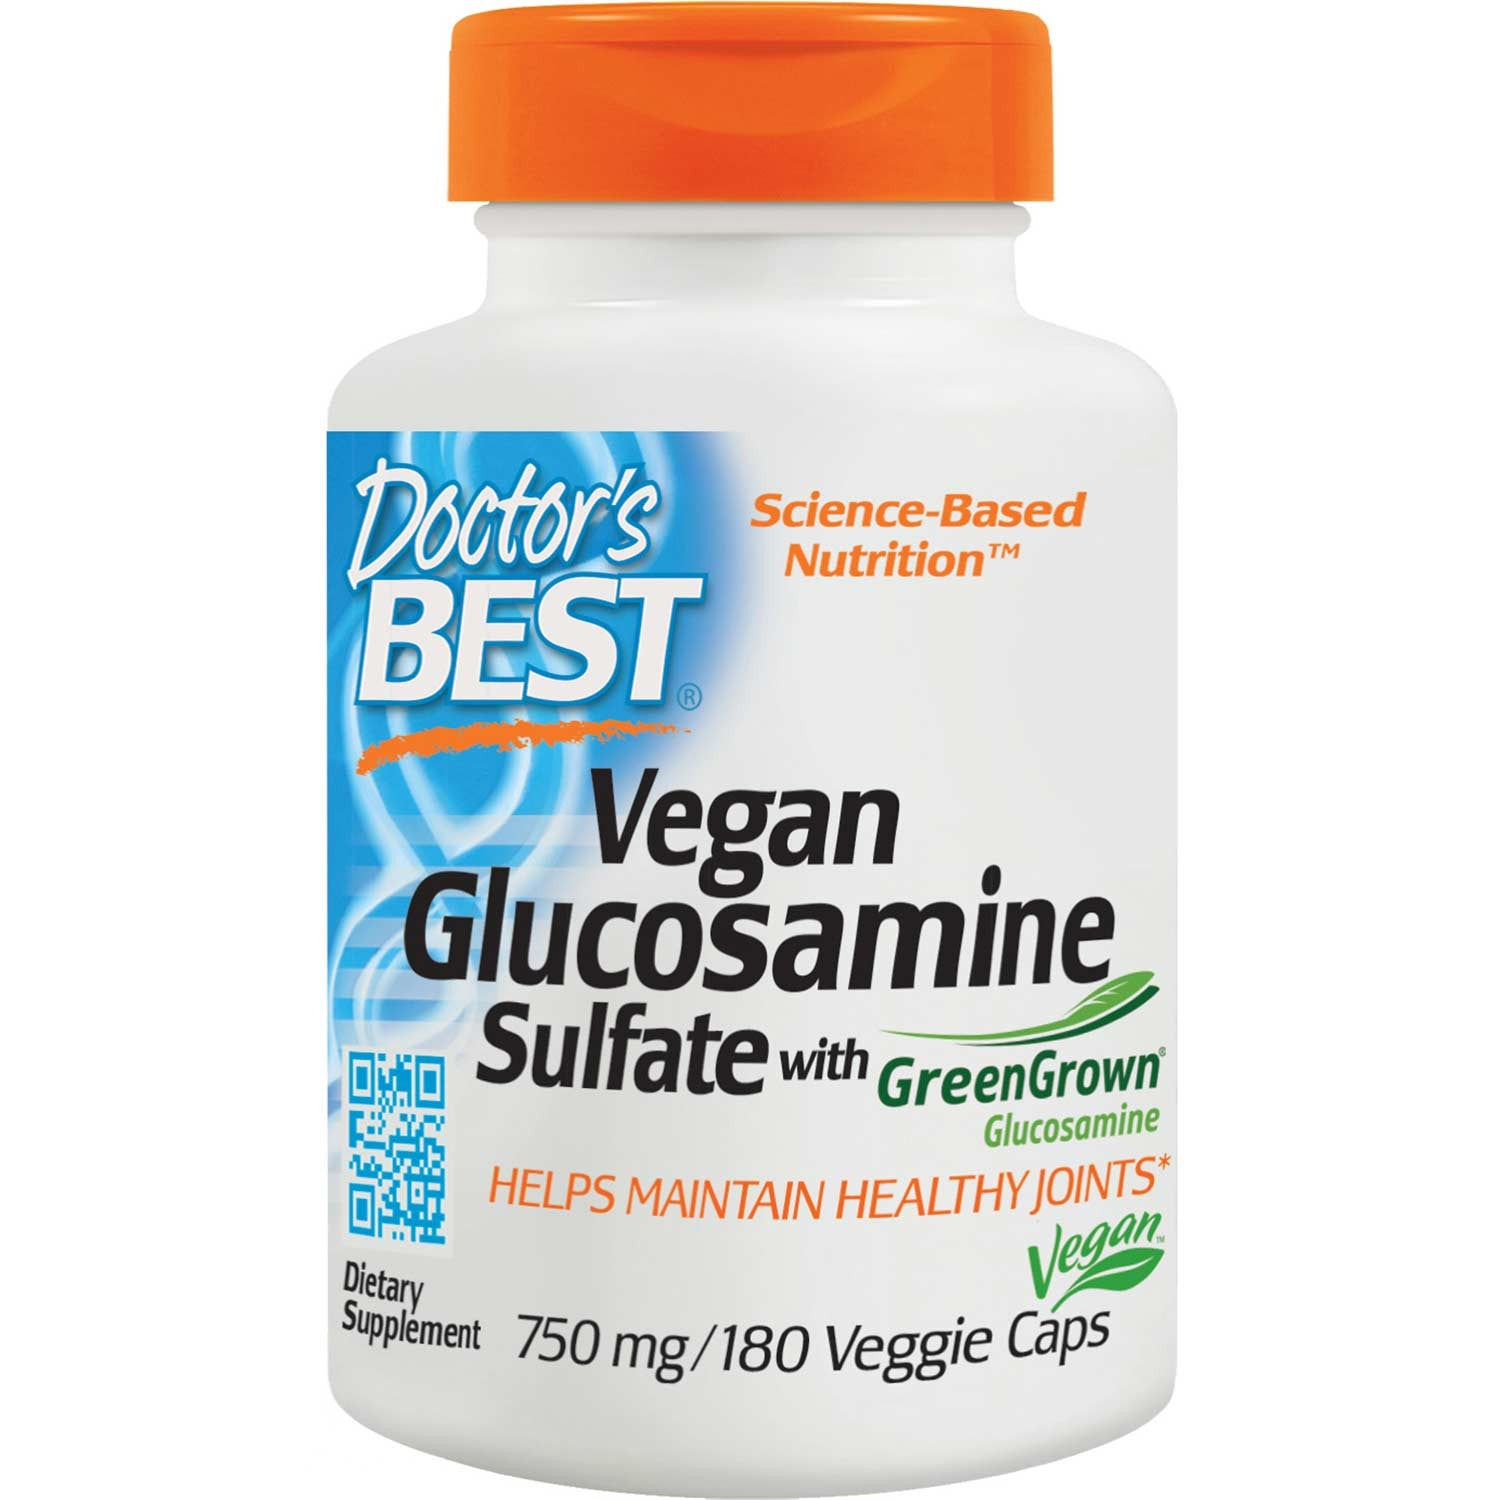 Doctor's Best Vegan Glucosamine Sulfate with GreenGrown Glucosamine 750mg, 180 vcaps-NaturesWisdom